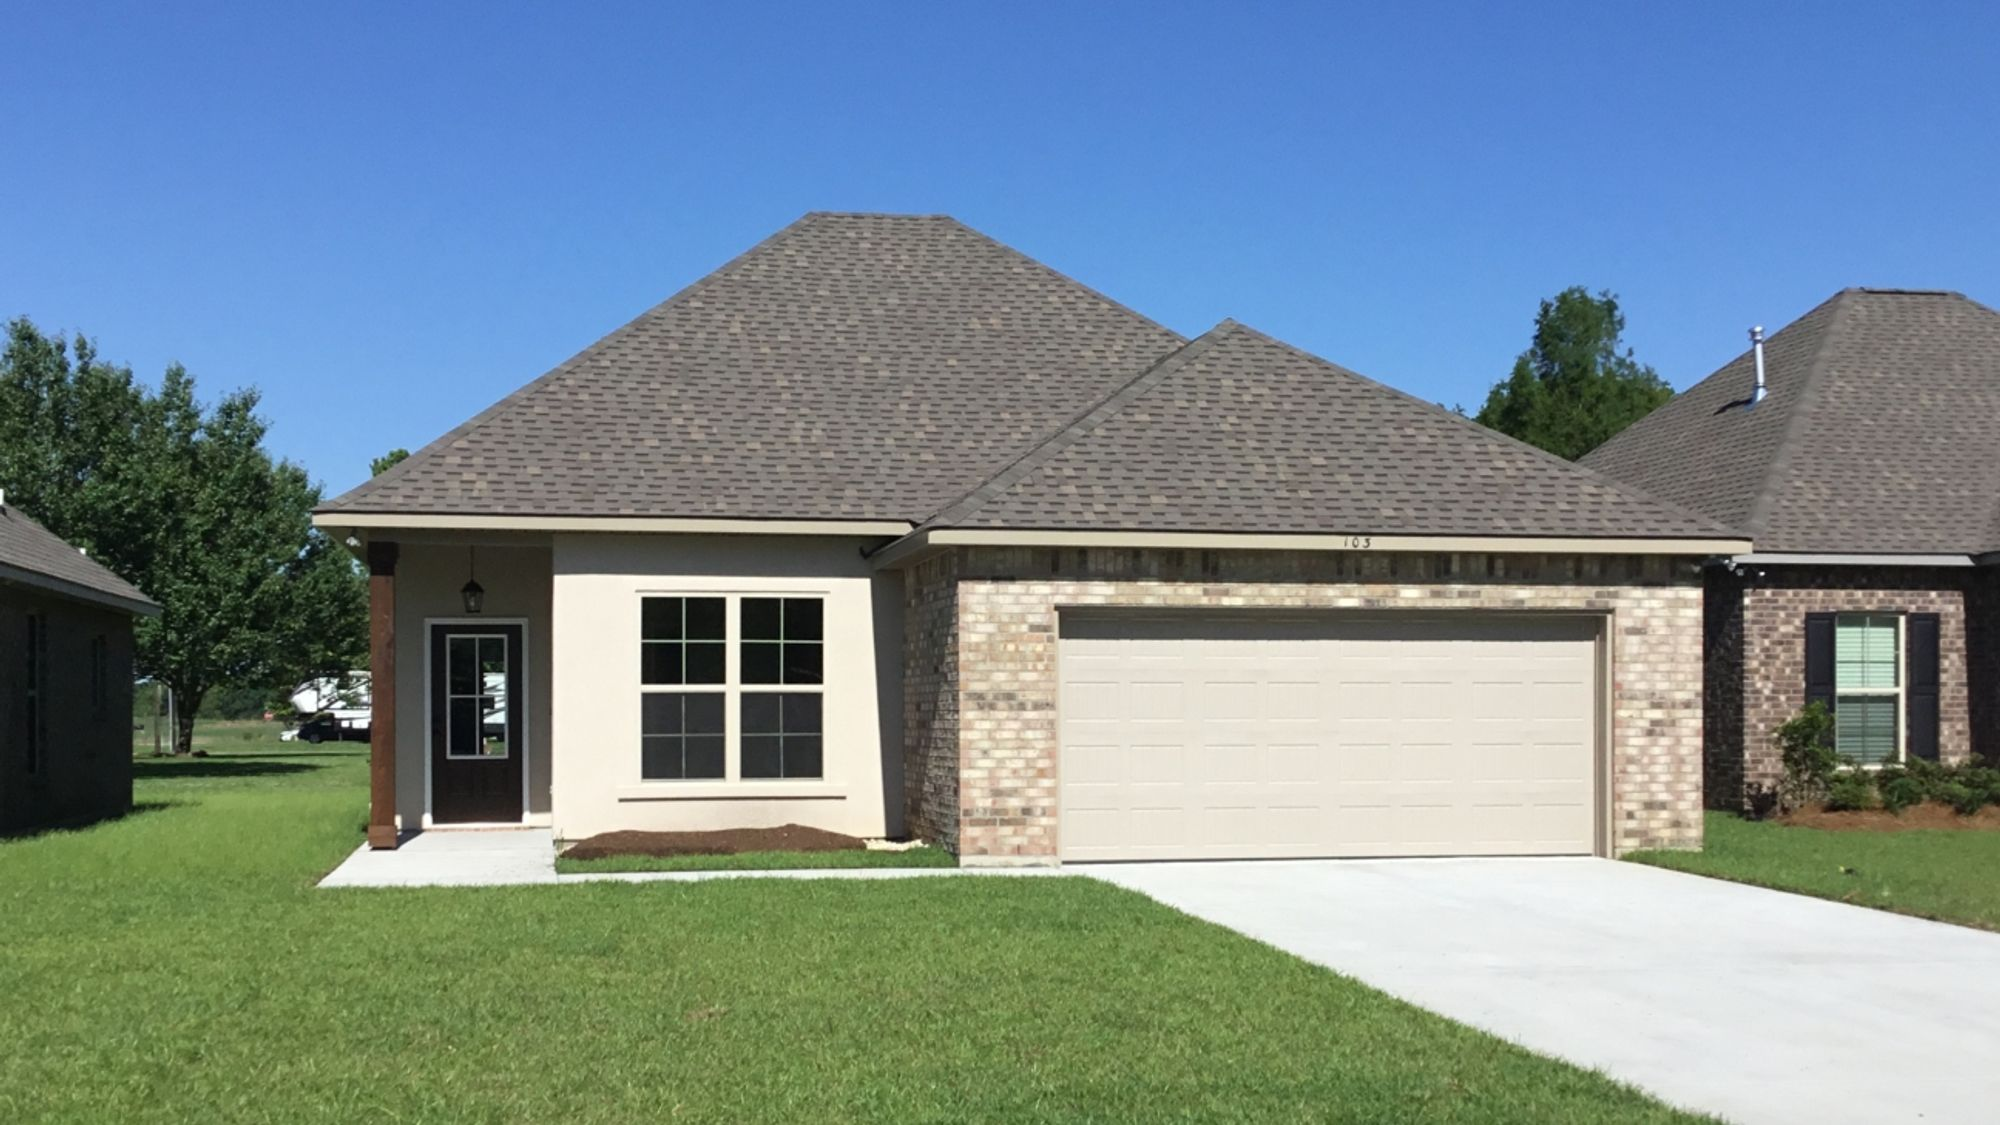 Front View - Cottonwood Pond - DSLD Homes - Youngsville